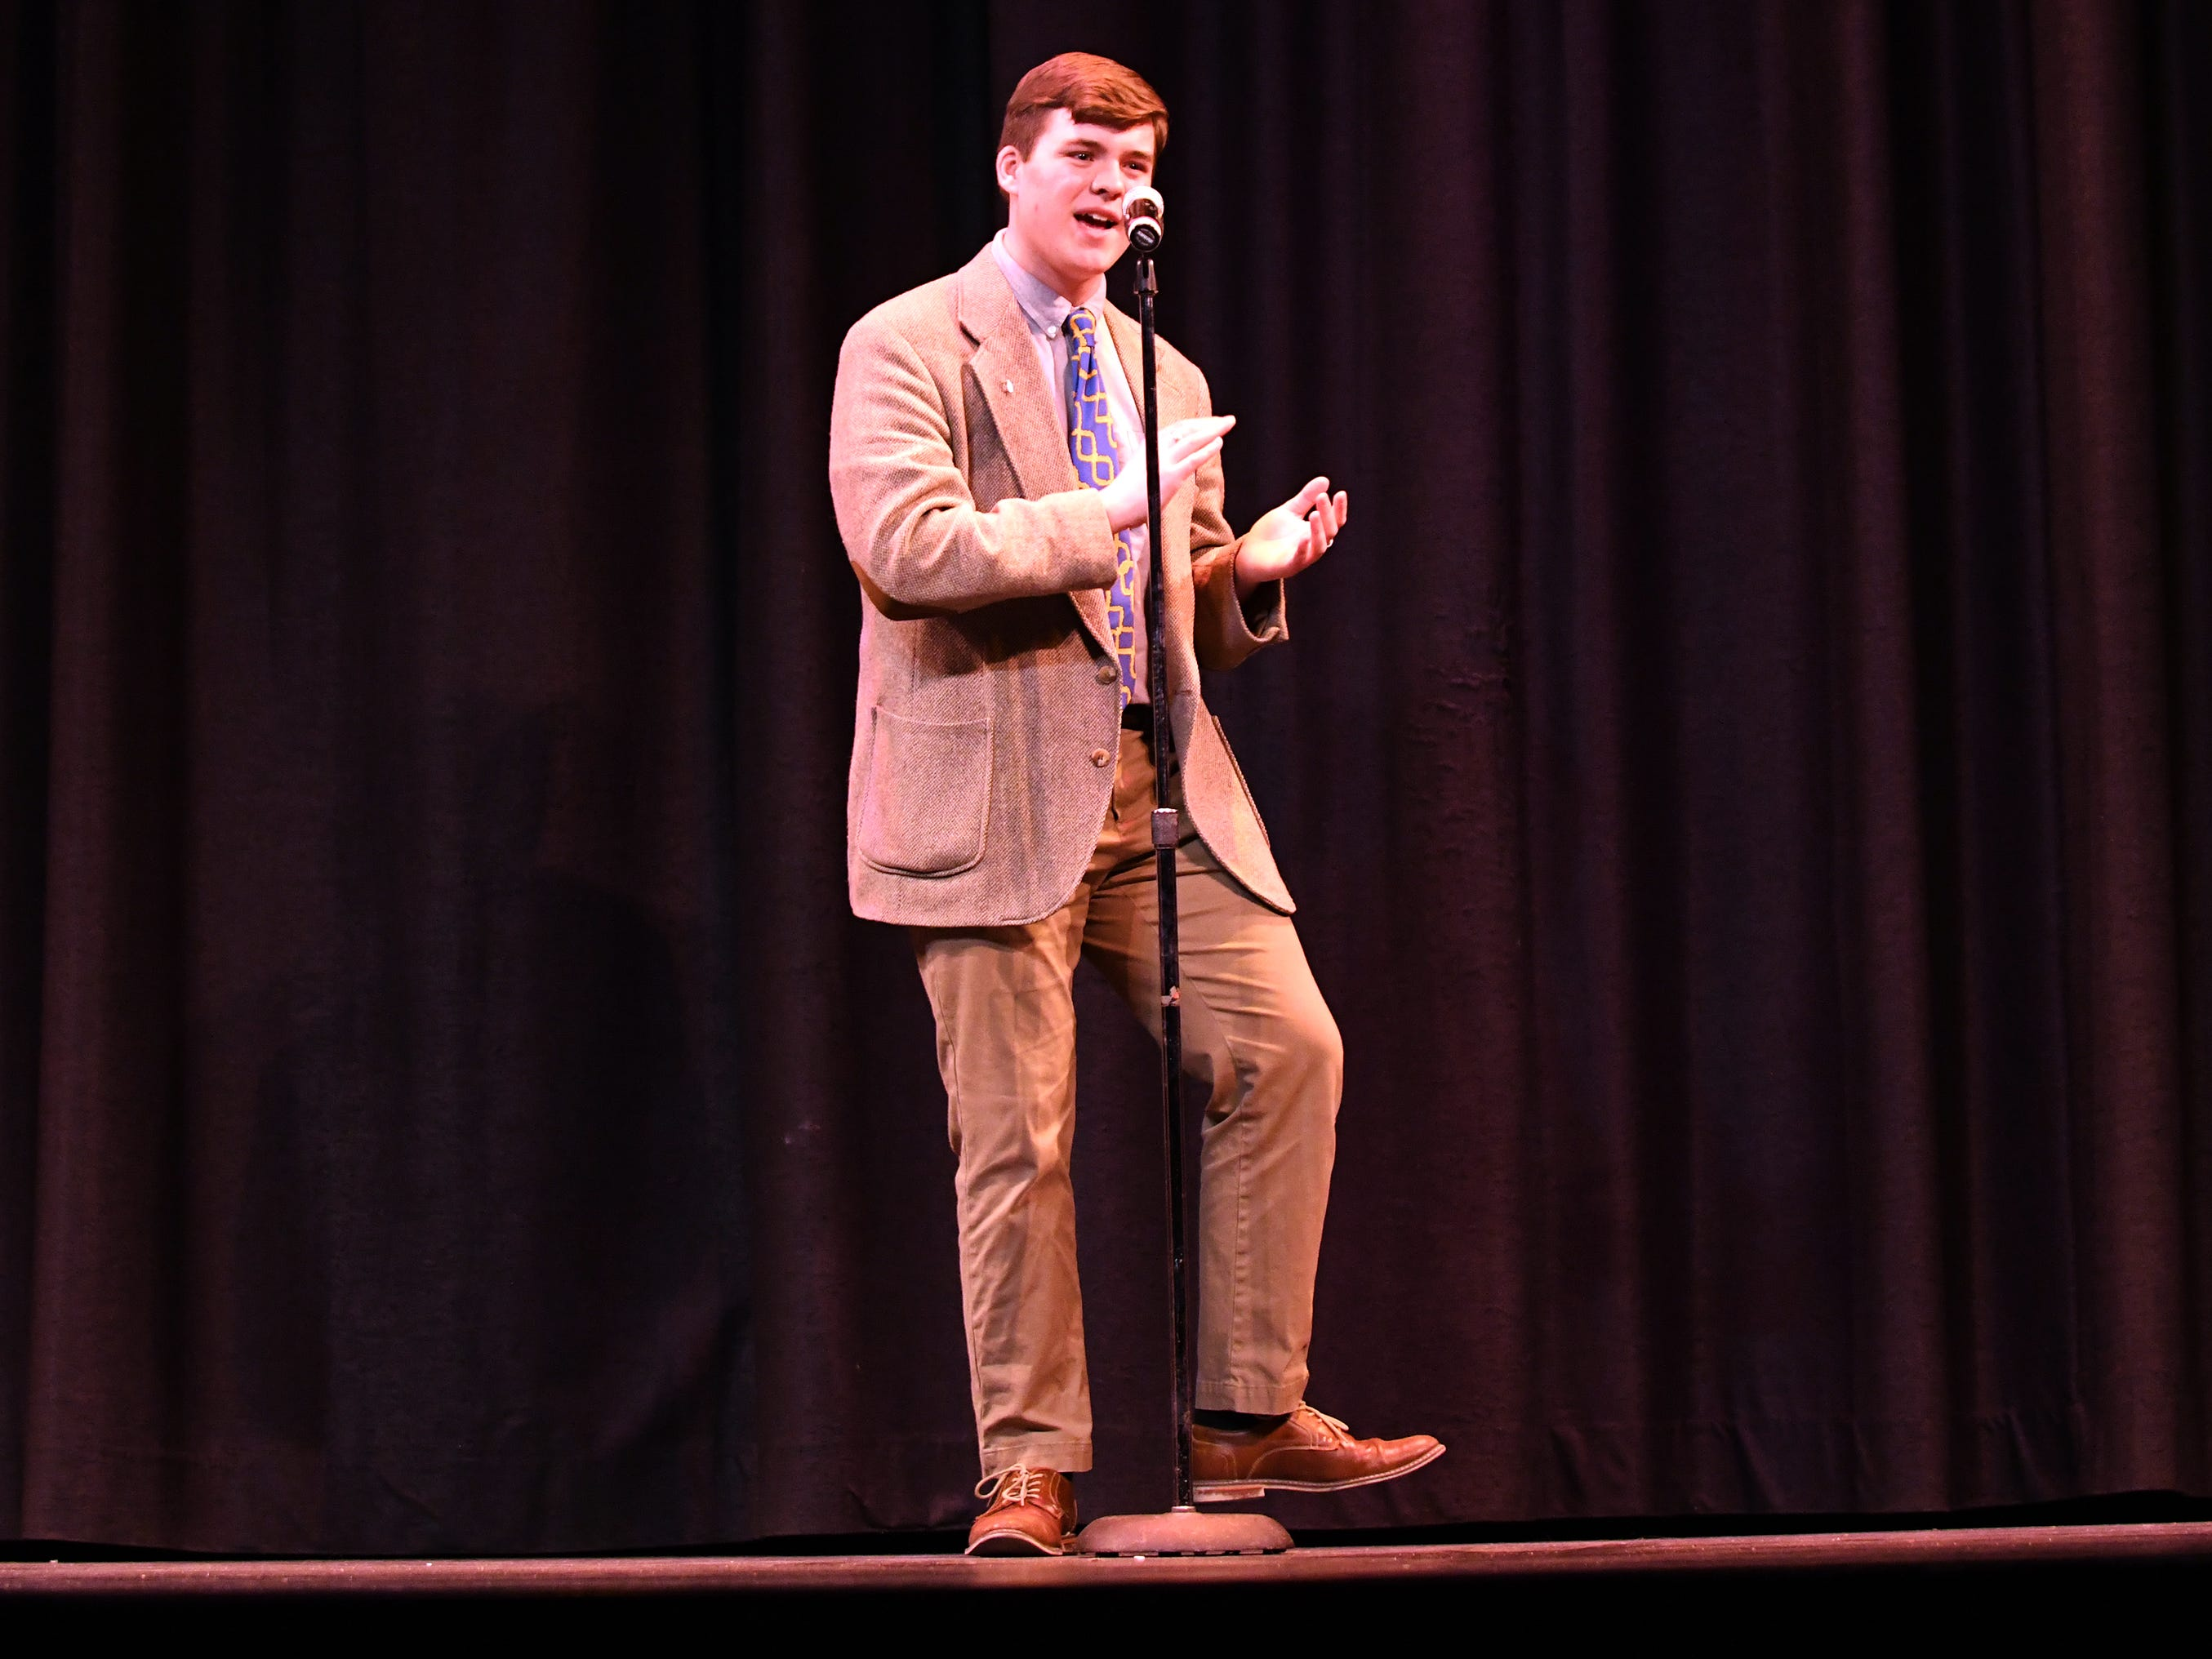 Curtis Riggins performs during the talent portion of Mr. Vineland 2019 at Vineland High School on Thursday, January 10.